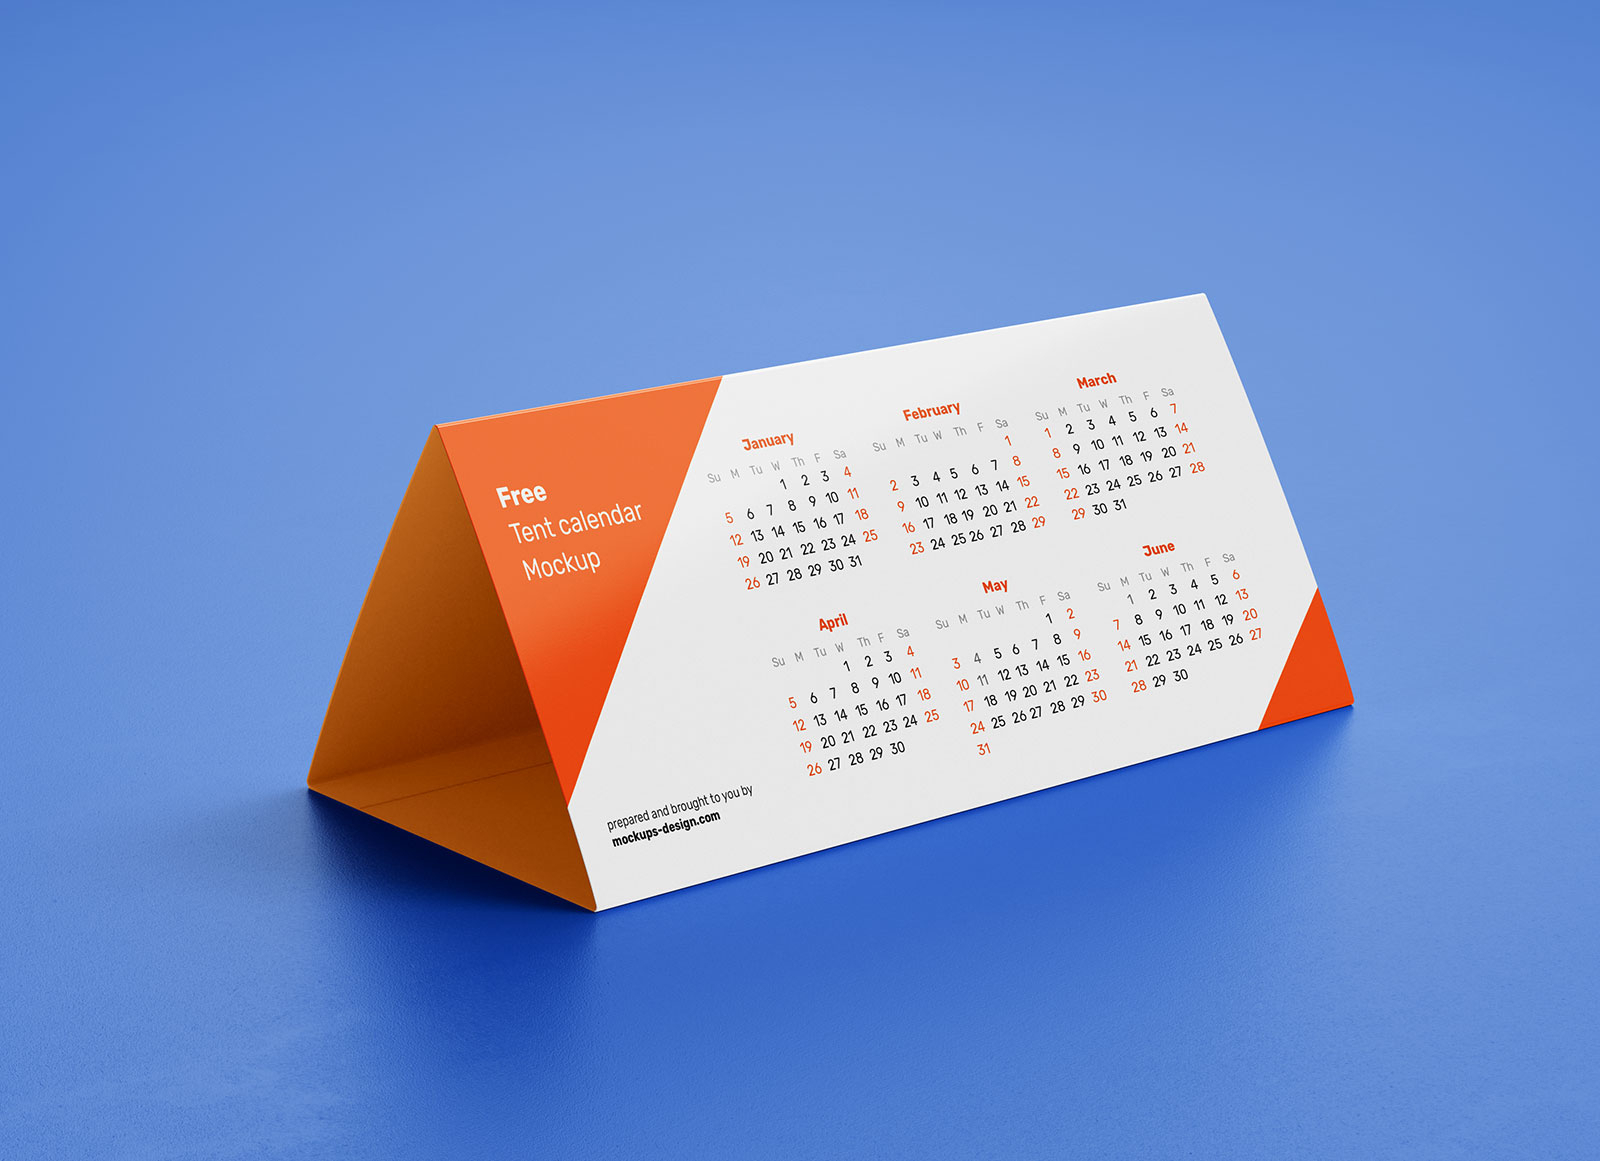 Free Dl Tent Desk Calendar 2020 Mockup Psd Set  Good Mockups with regard to 2020 Calendar Psd File